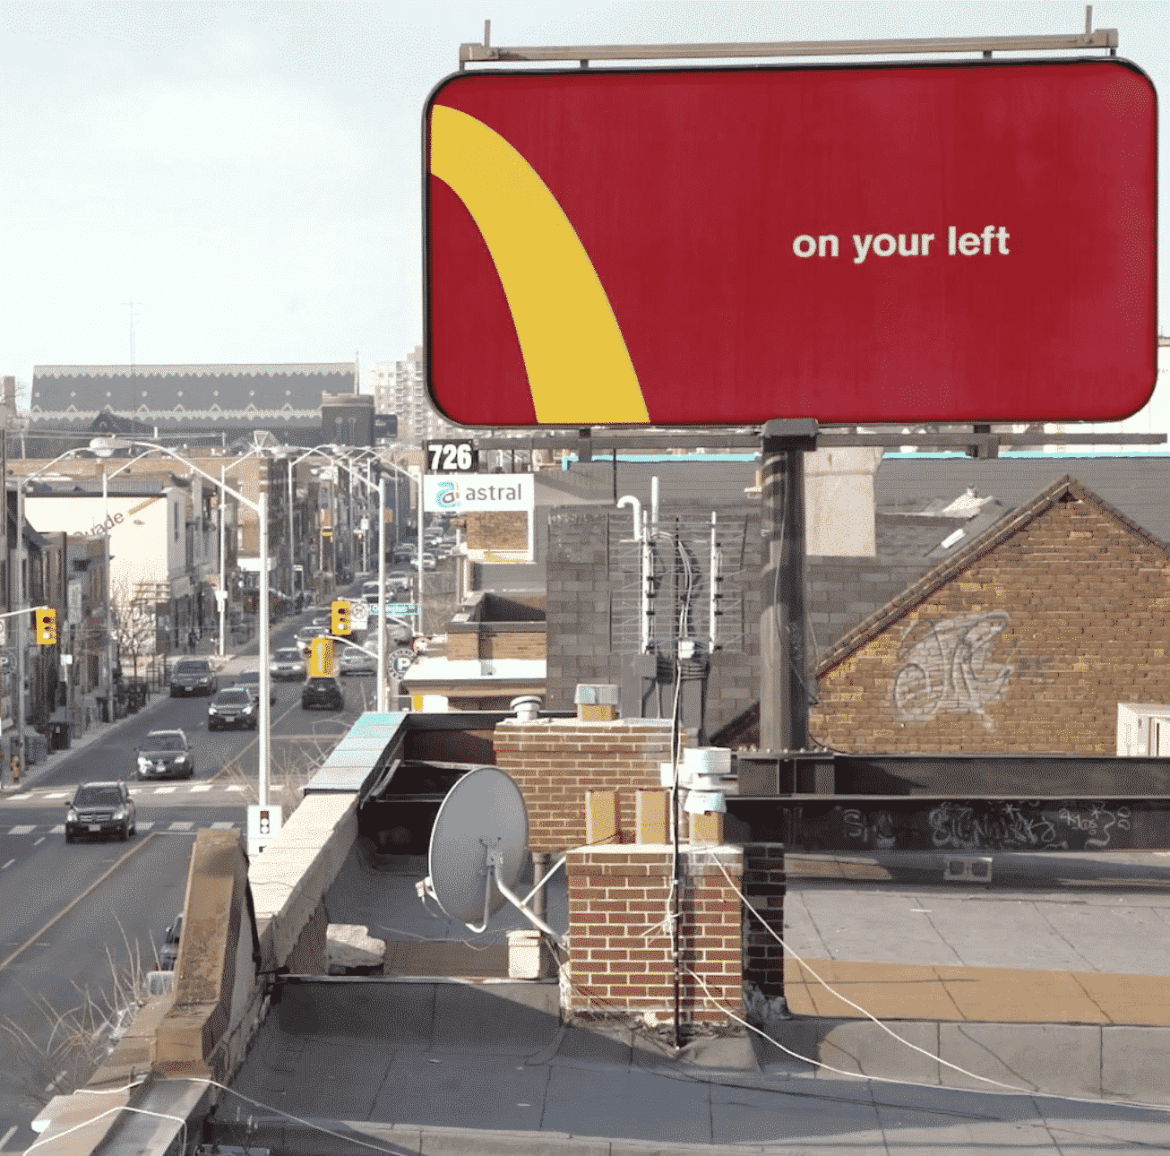 McDonald's outdoor ads